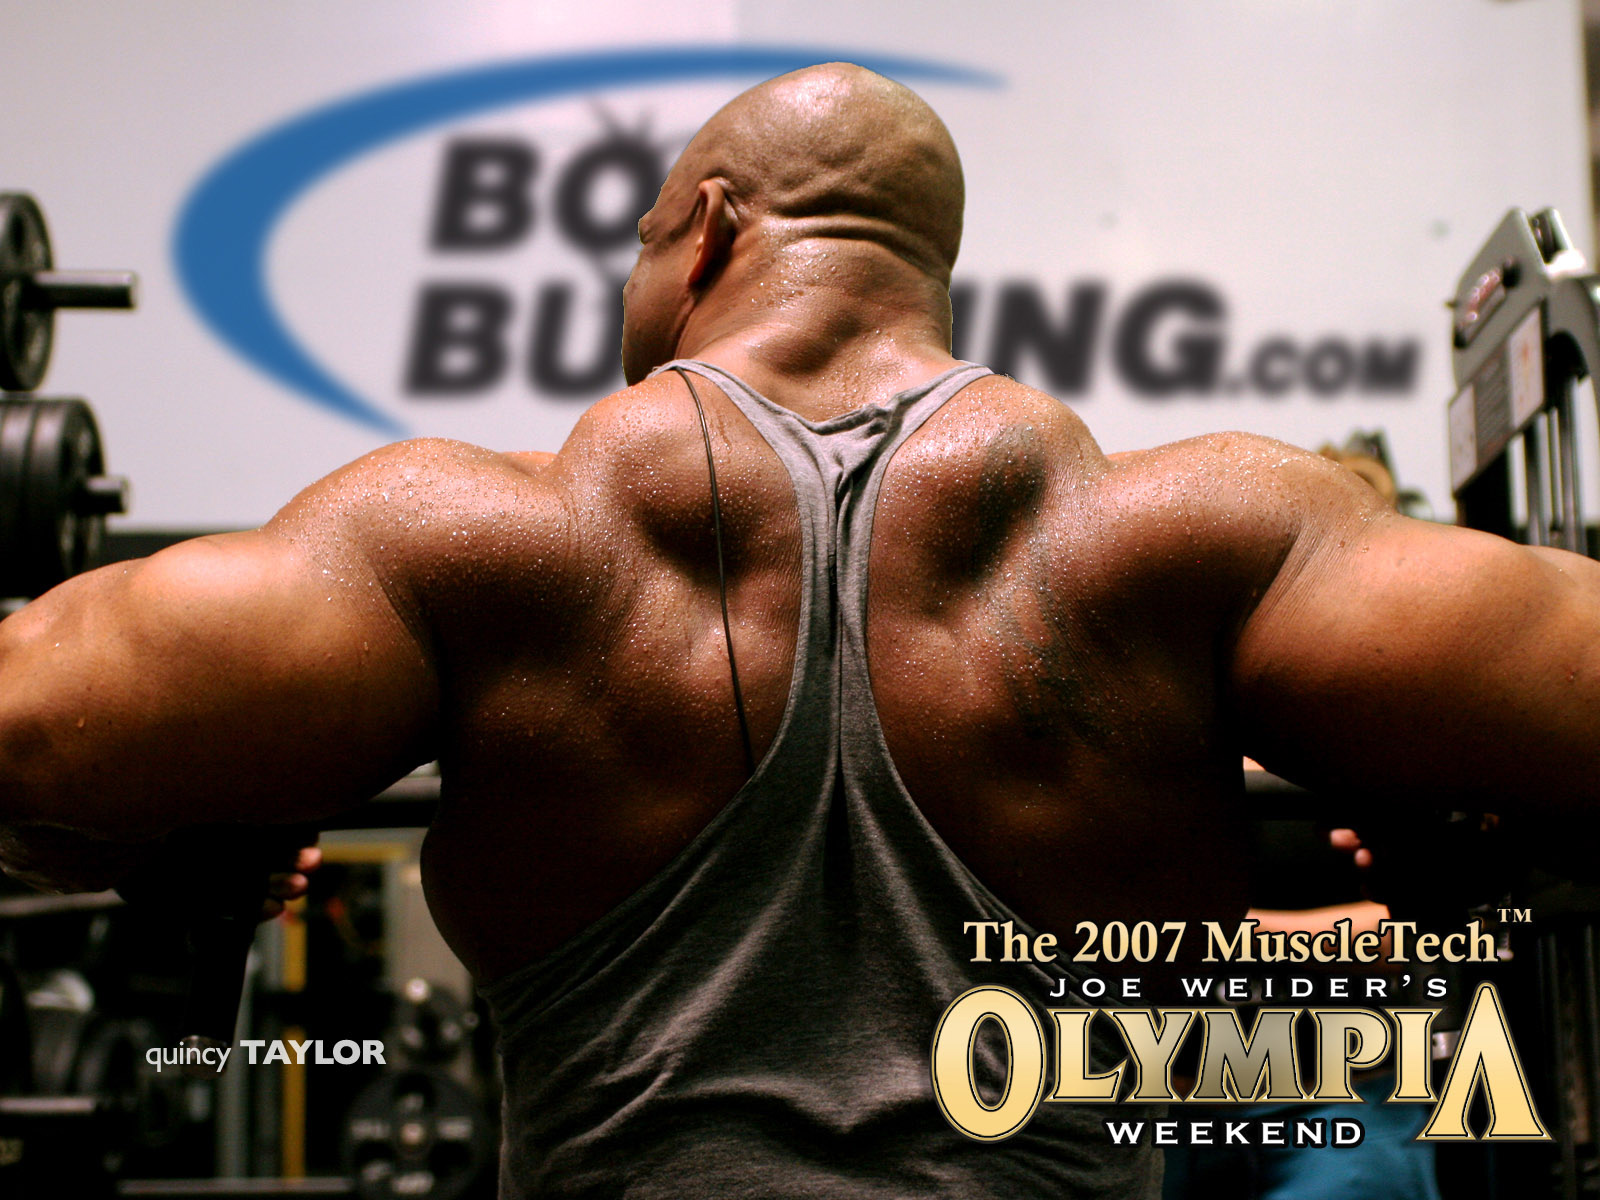 Wallpapers Mr Olympia Quincy Taylor HD Wallpapers Mr Olympia 1600x1200